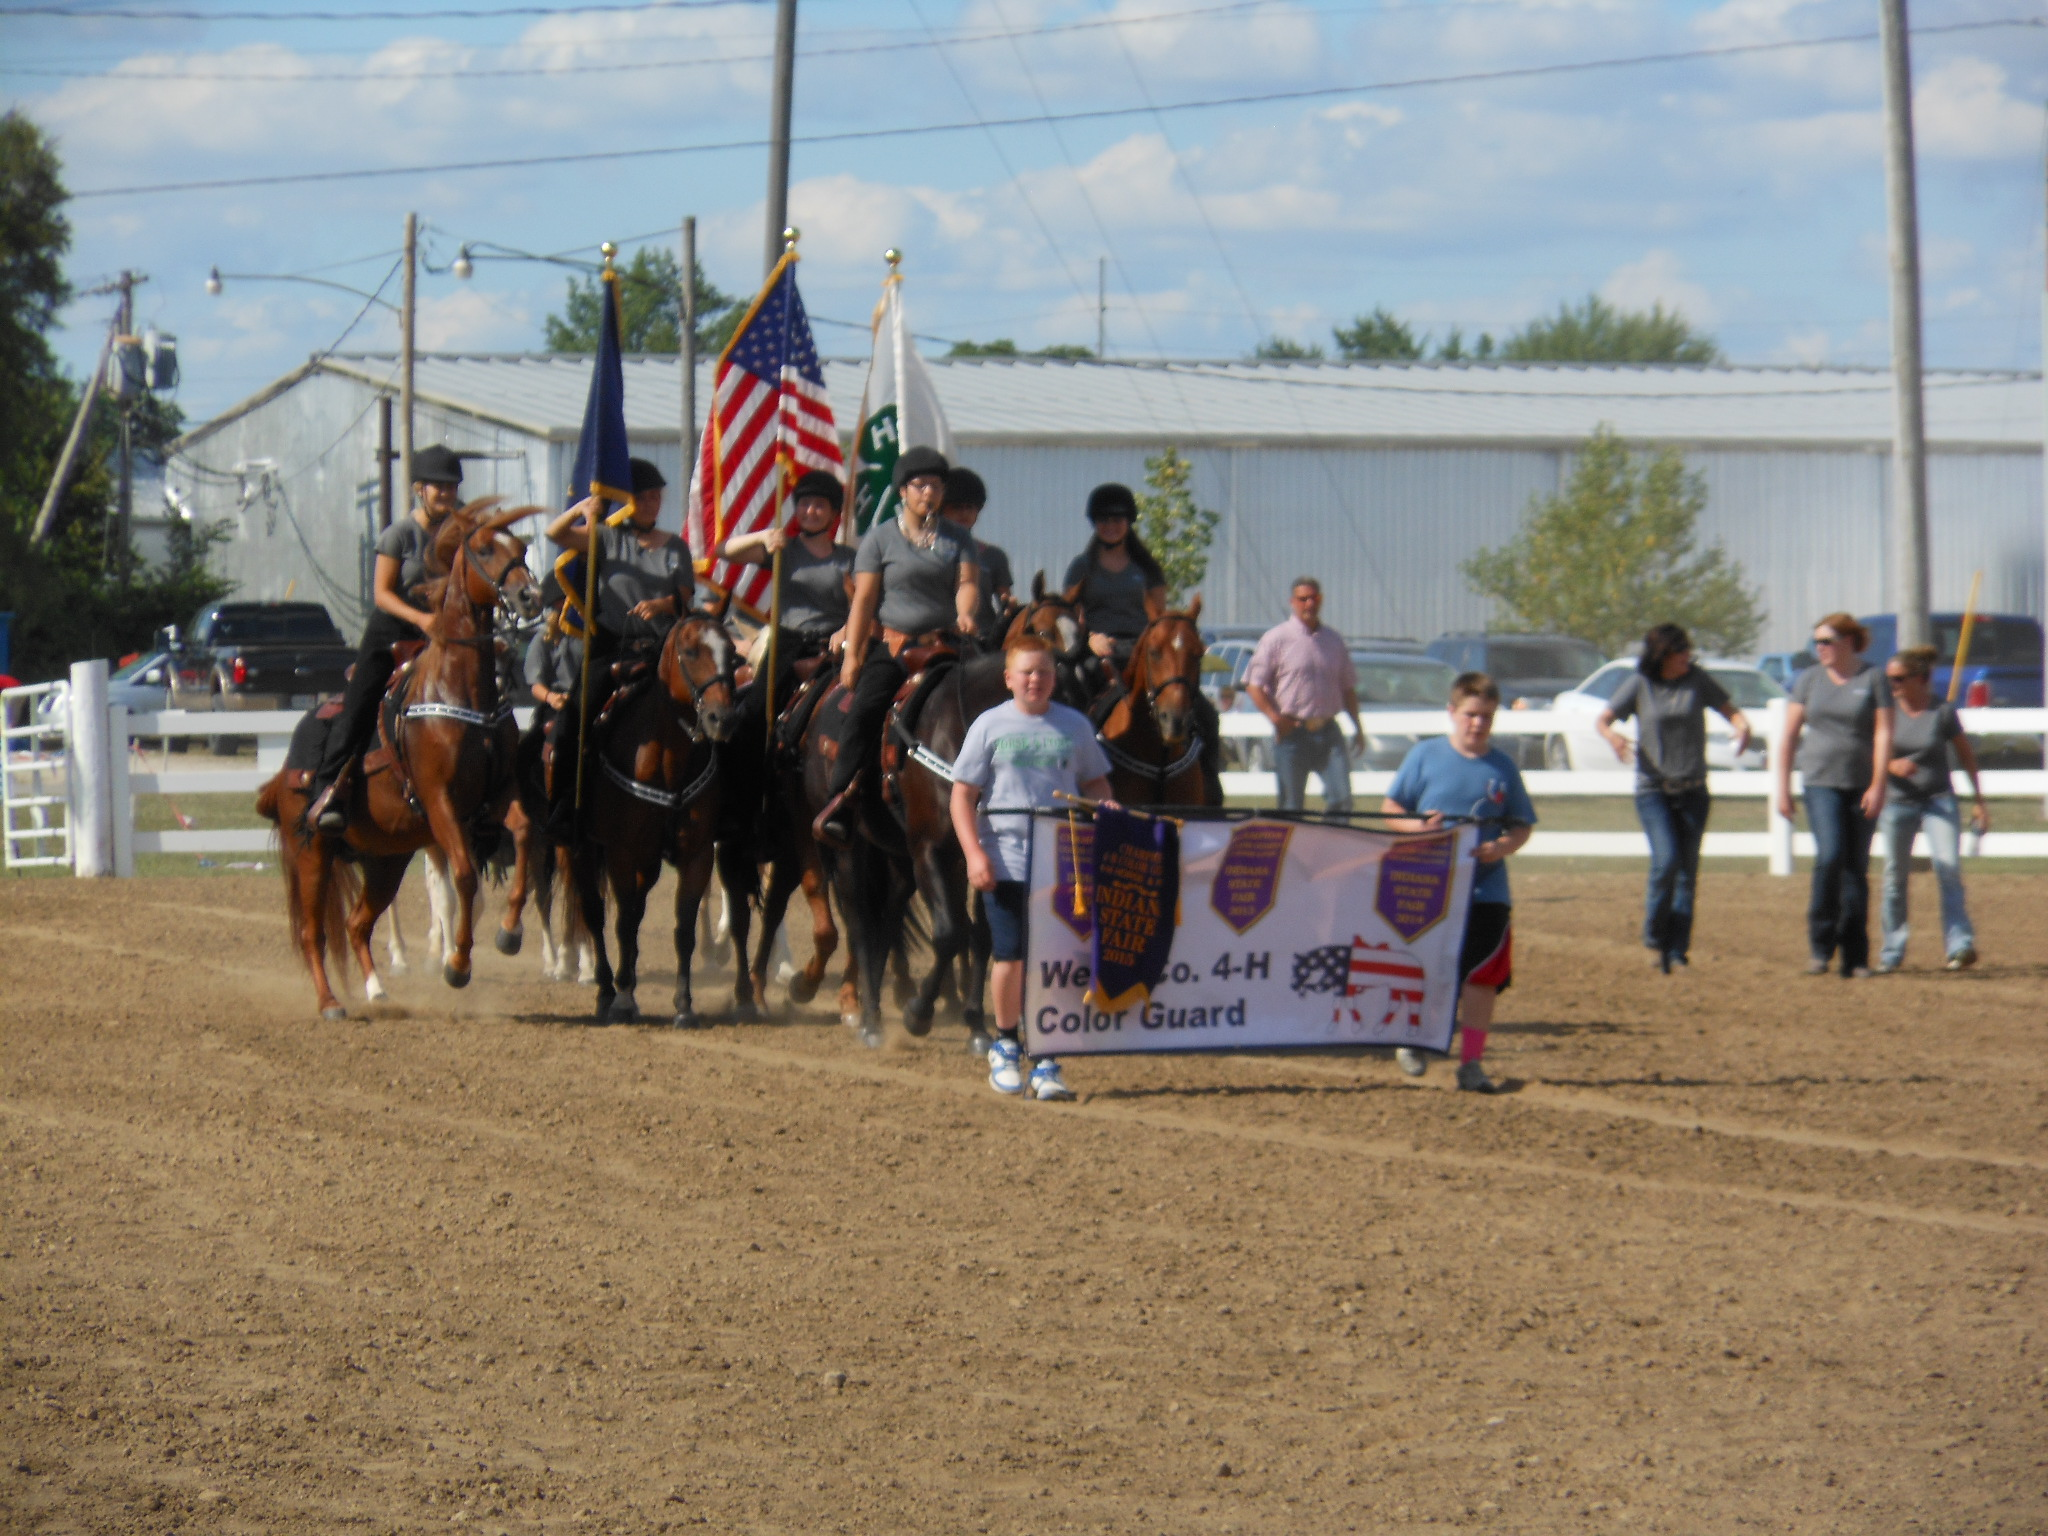 Mounted Color Guard